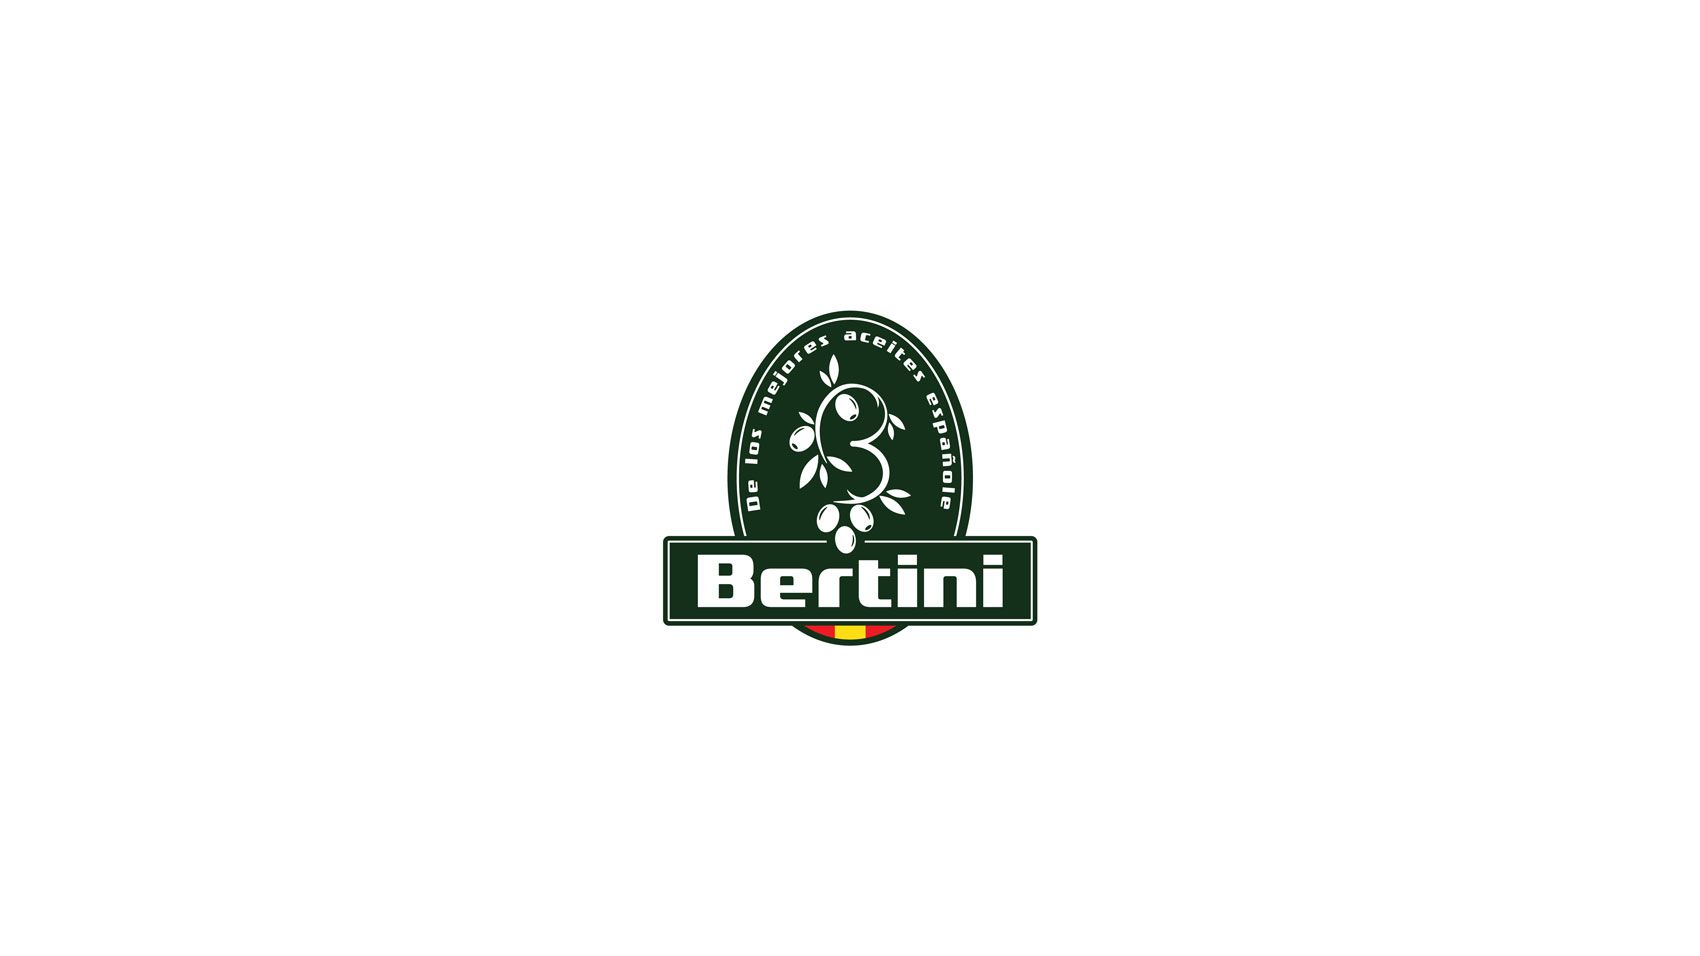 Bertini logo design